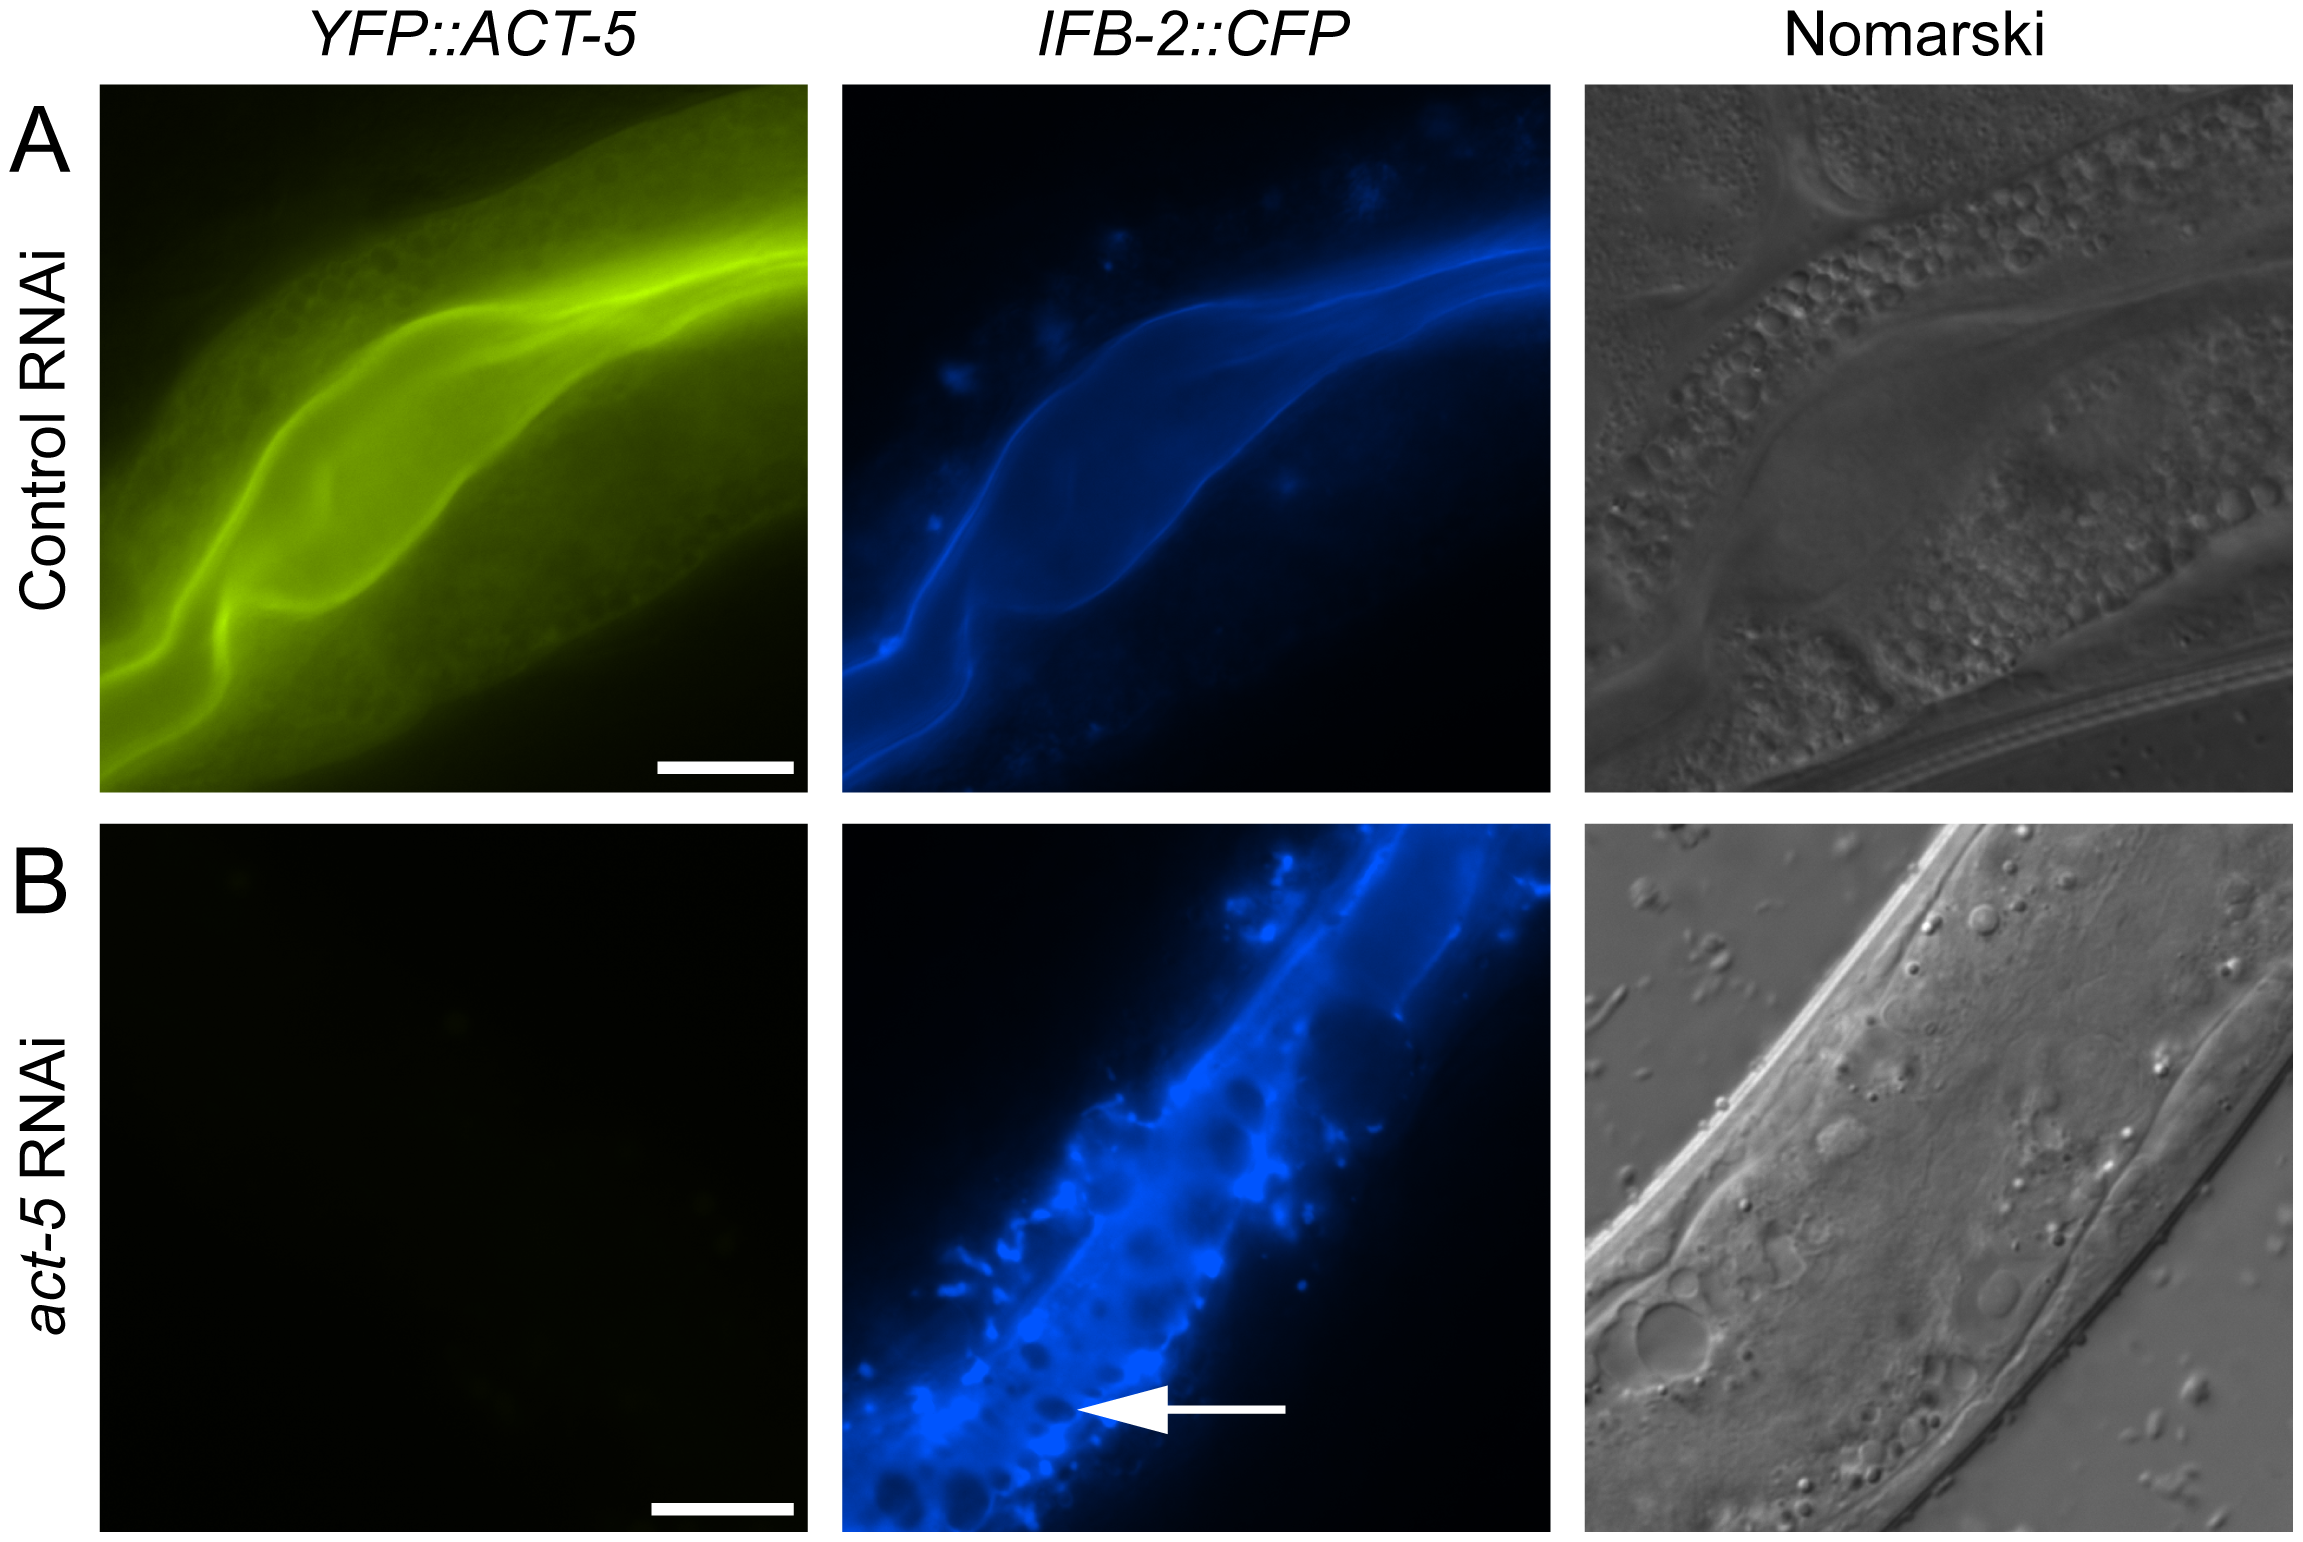 Reducing expression of actin causes terminal web gaps in the absence of infection.